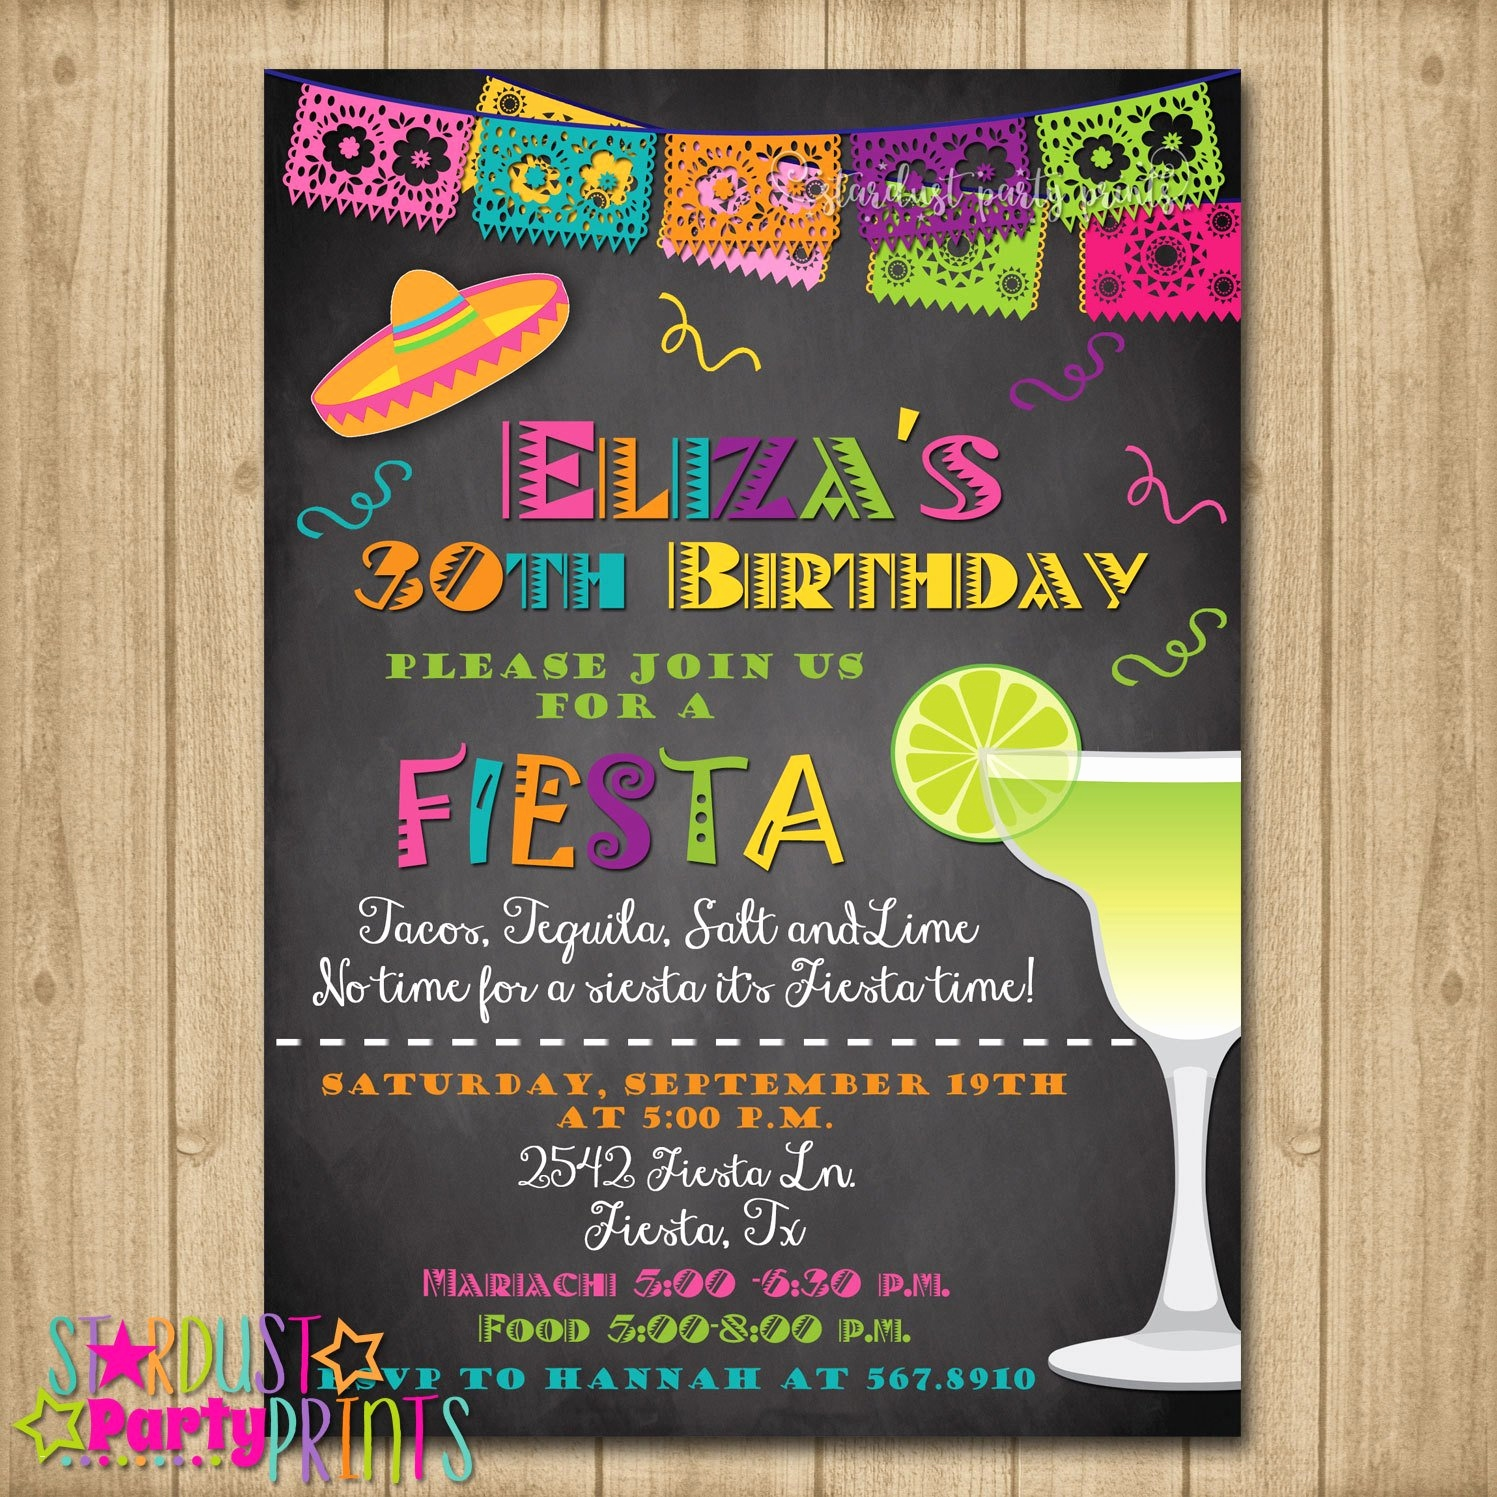 50 Geburtstag Mann Schön Funny 50th Birthday Invitations New 50 Birthday Invitations